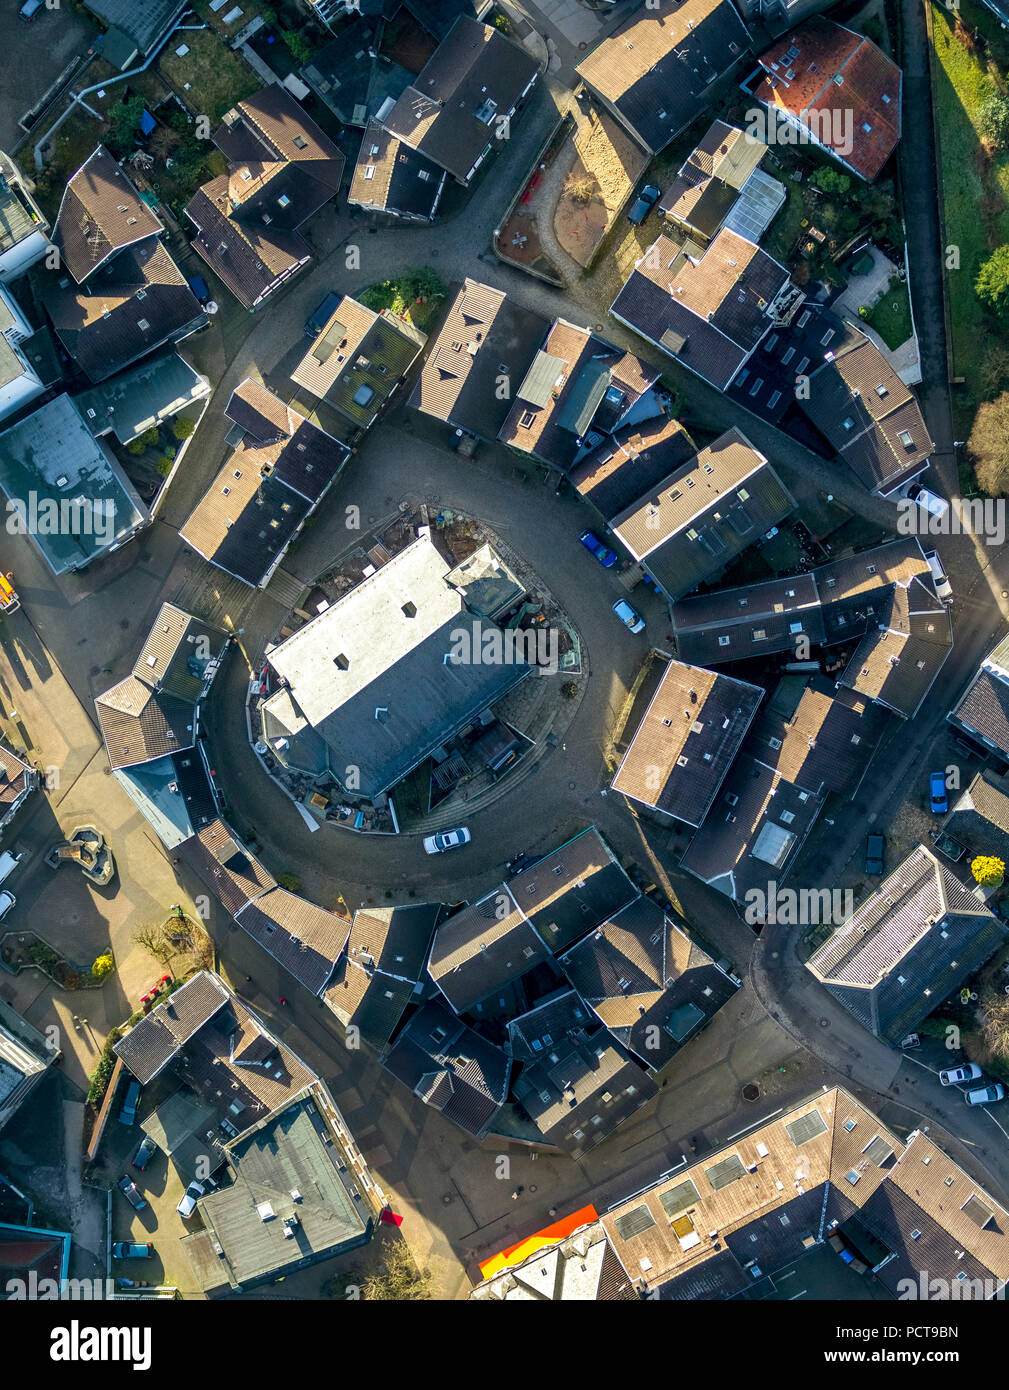 Town Centre of Neviges, Evangelical Church, Neviges, Velbert, Ruhr area - Stock Image